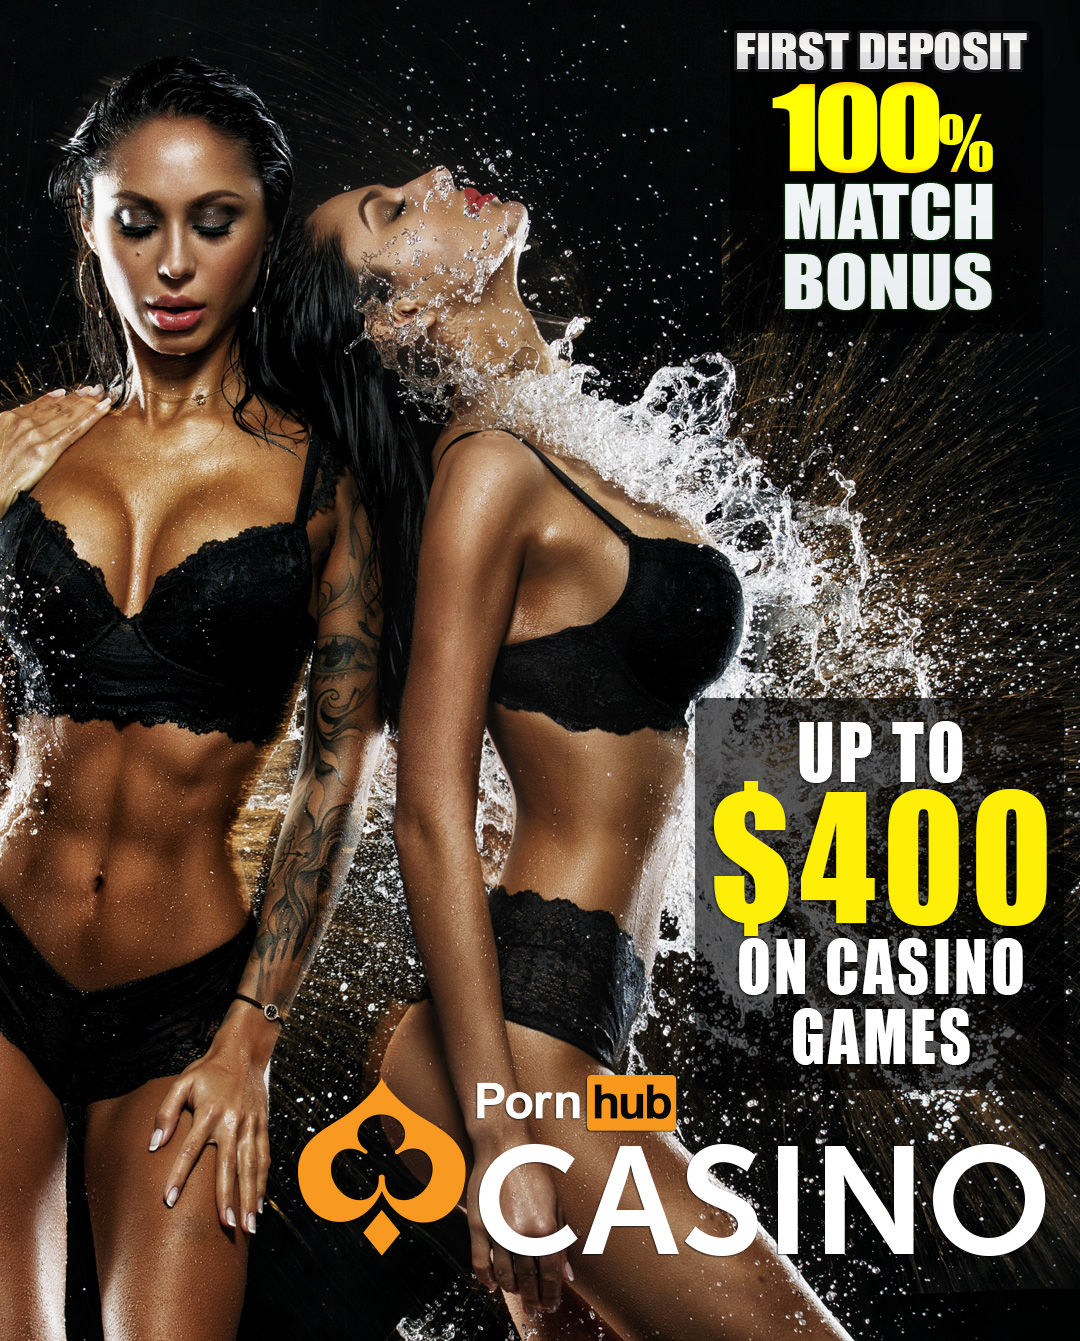 instant-100-1st-deposit-bonus-of-up-to-400-on-casino-games-sport-bets-when-you-join-playhub-casino